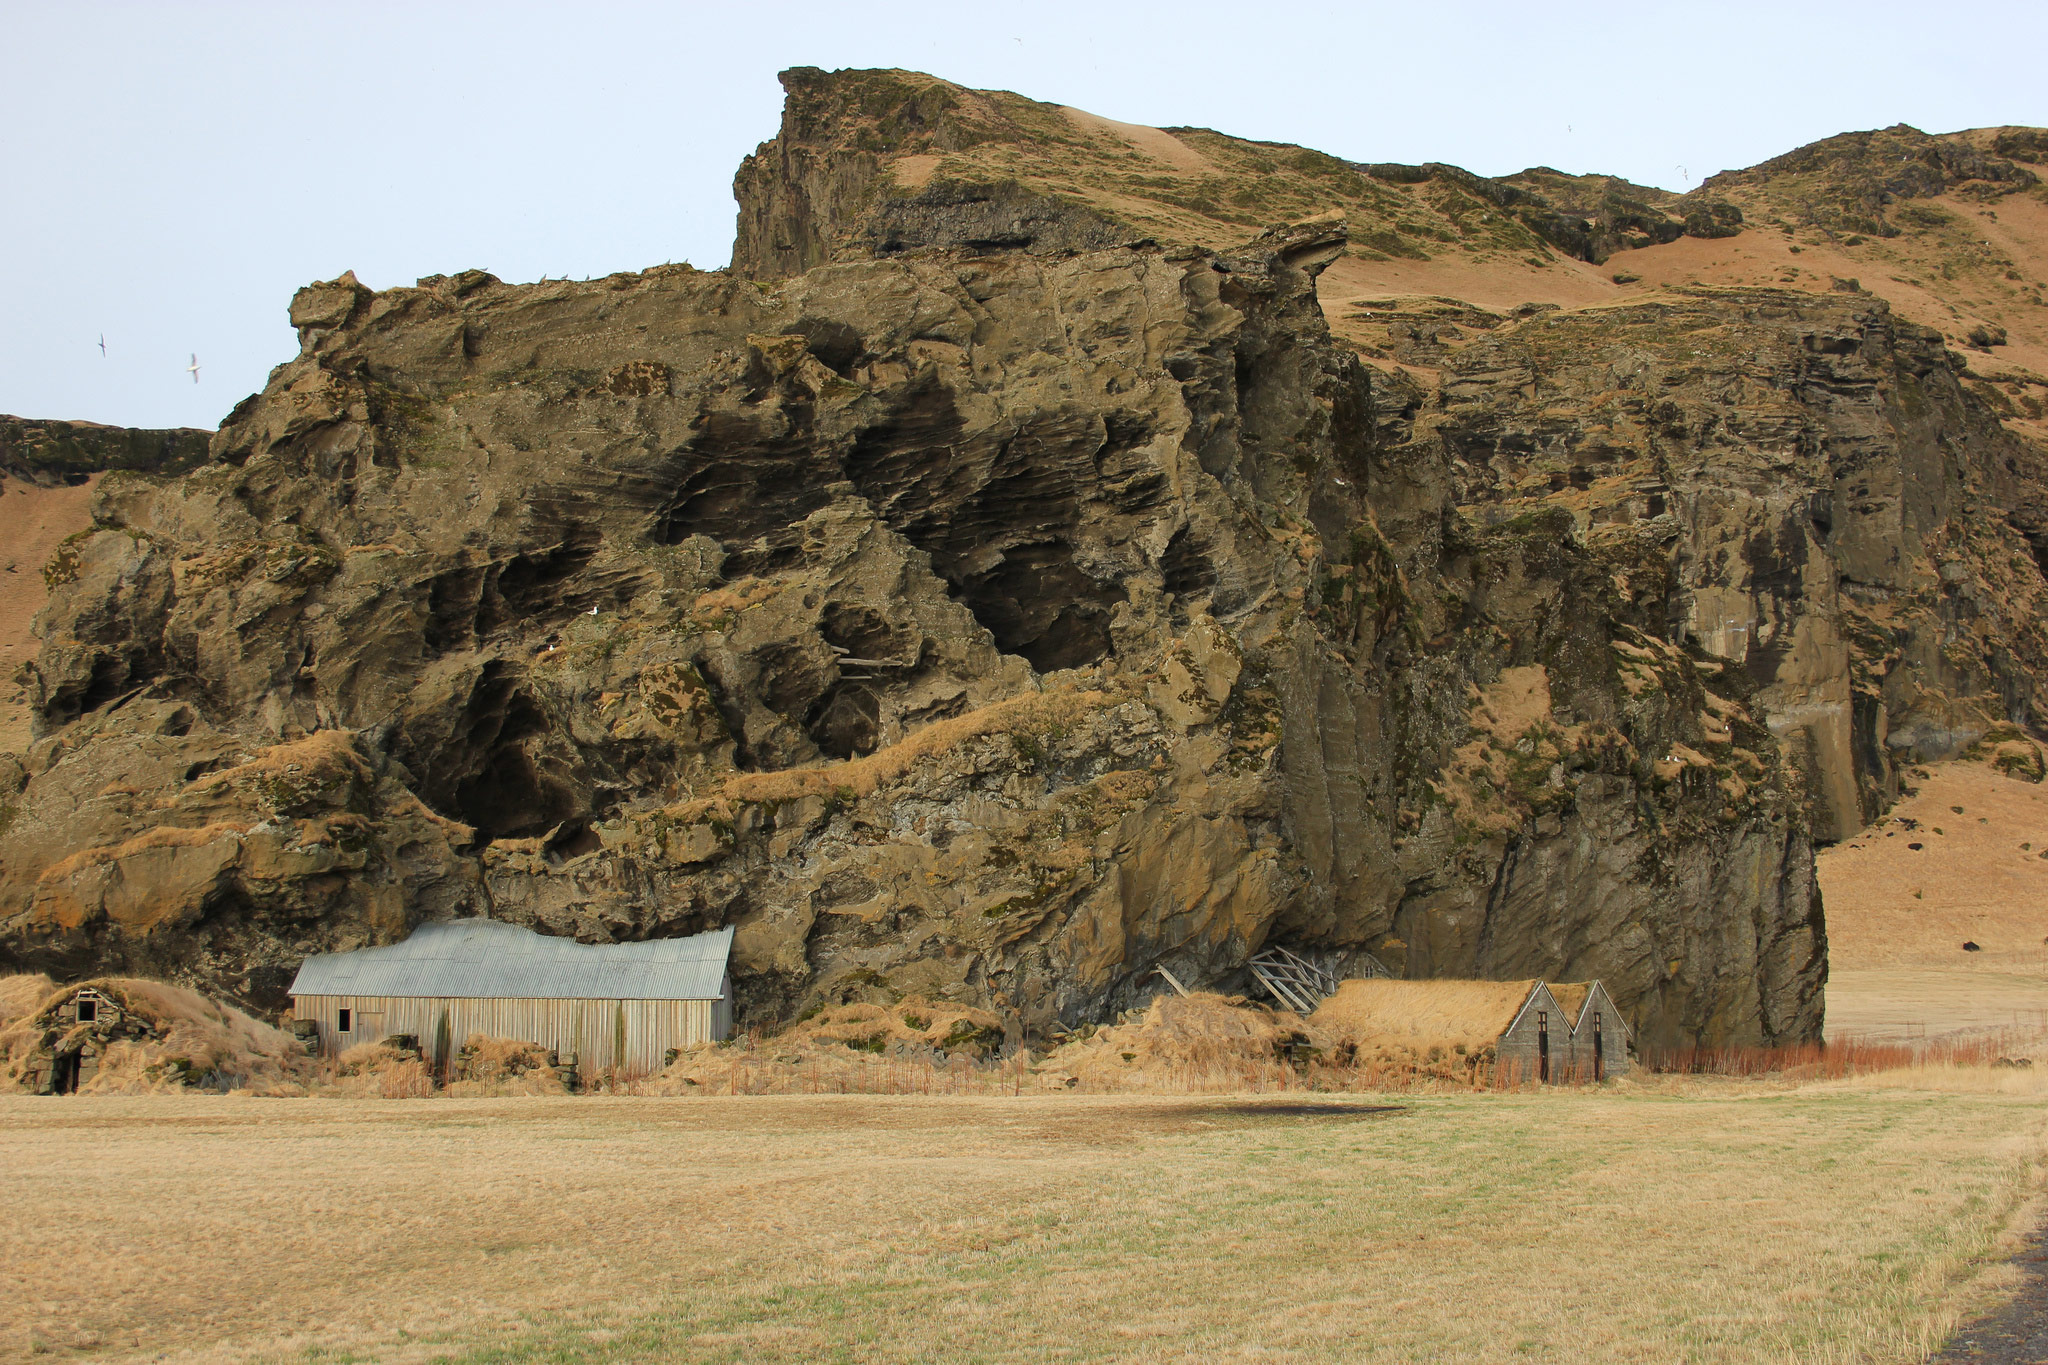 A fairy castle. Many Icelanders believe that Huldufólk or hidden people (elves) live in rocks and cliffs like these